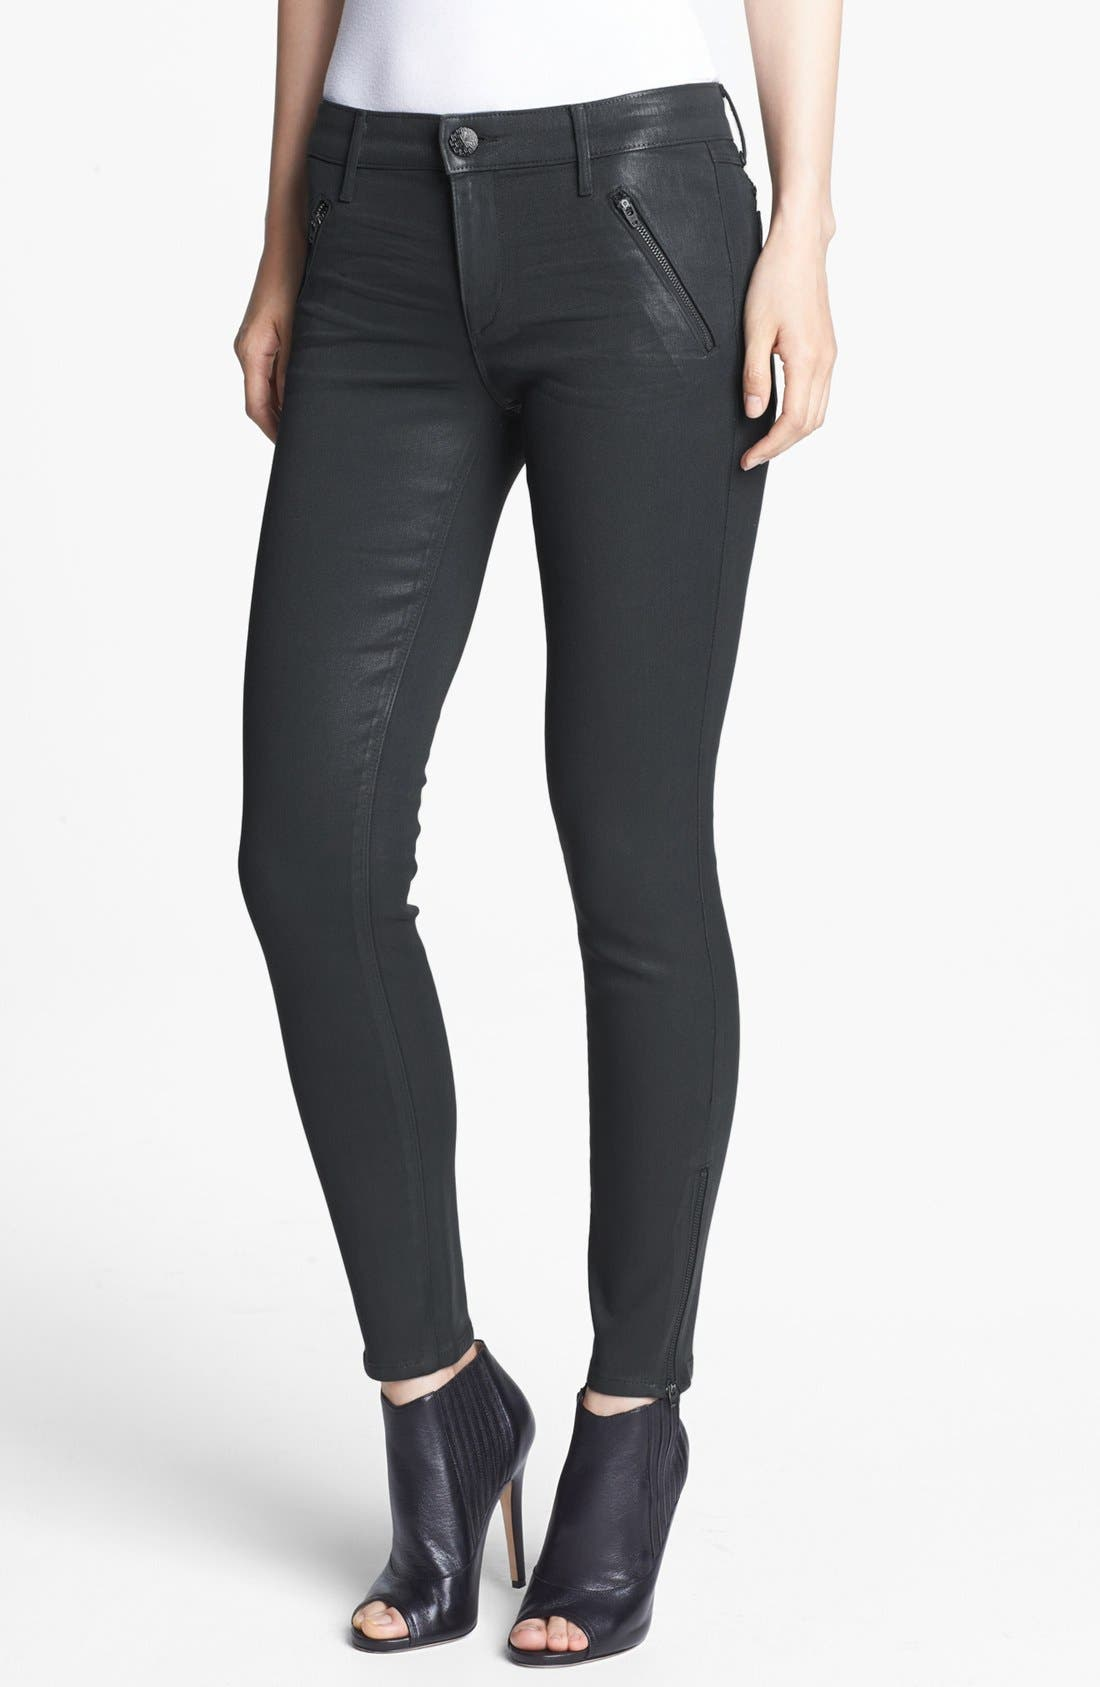 Alternate Image 1 Selected - Habitual 'Amalia' Coated Skinny Jeans